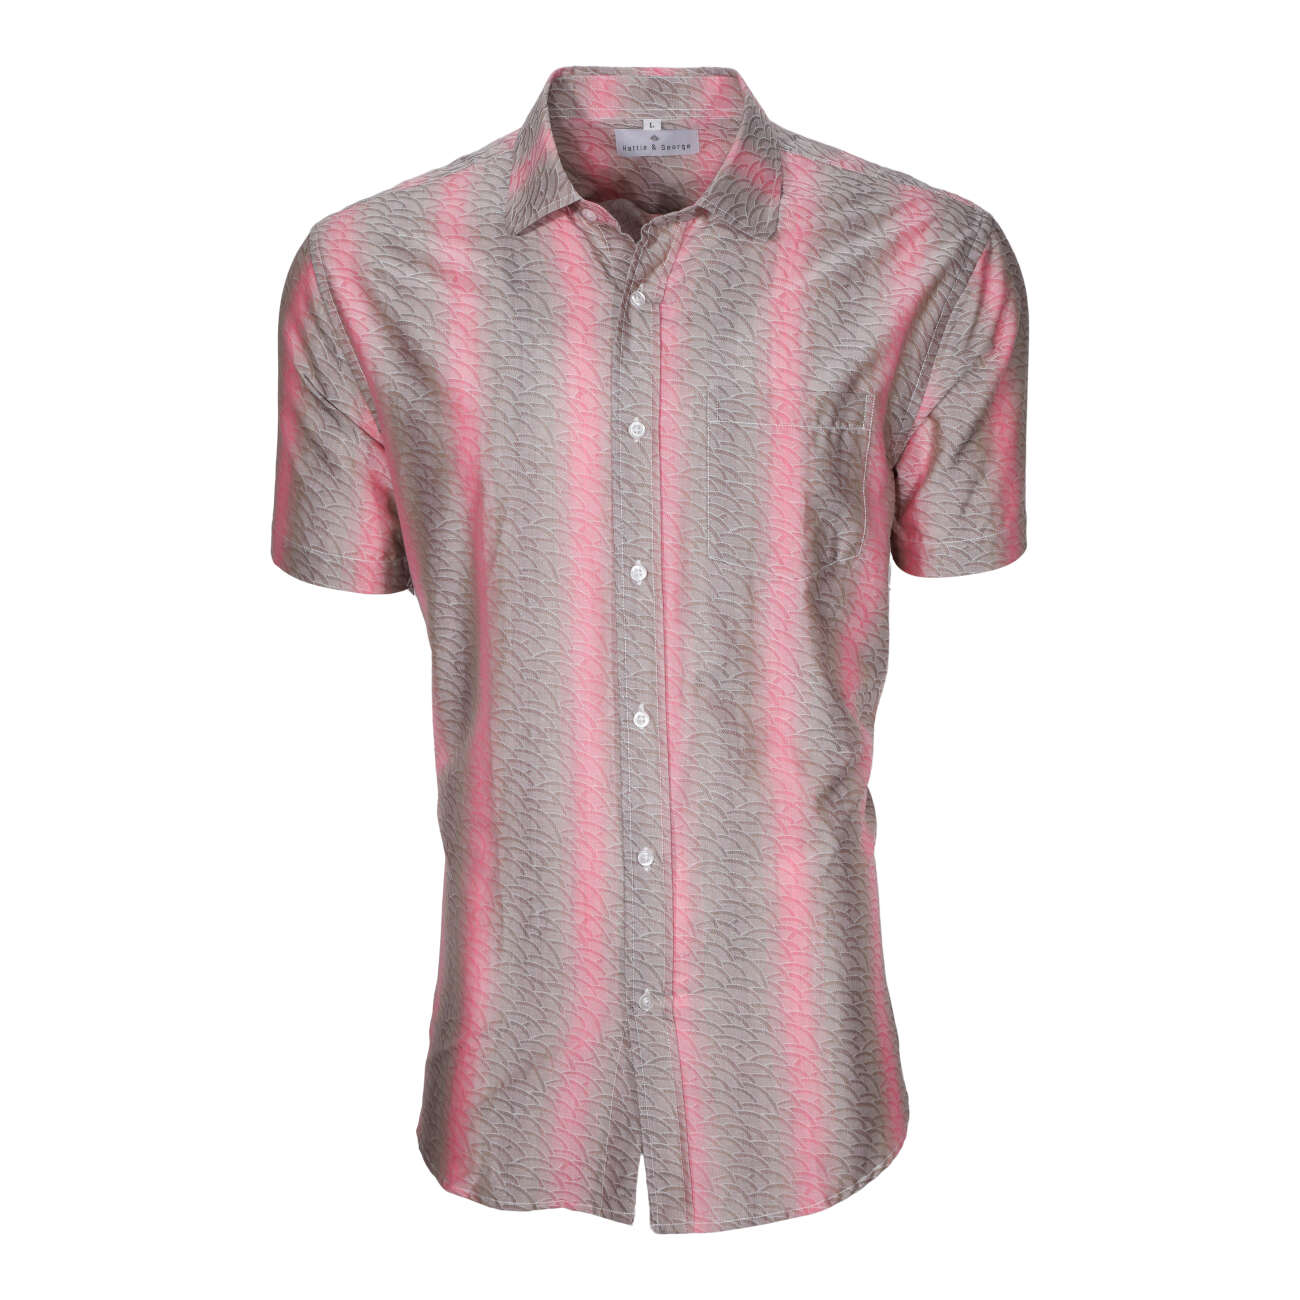 Coral men's short sleeve dress shirt.